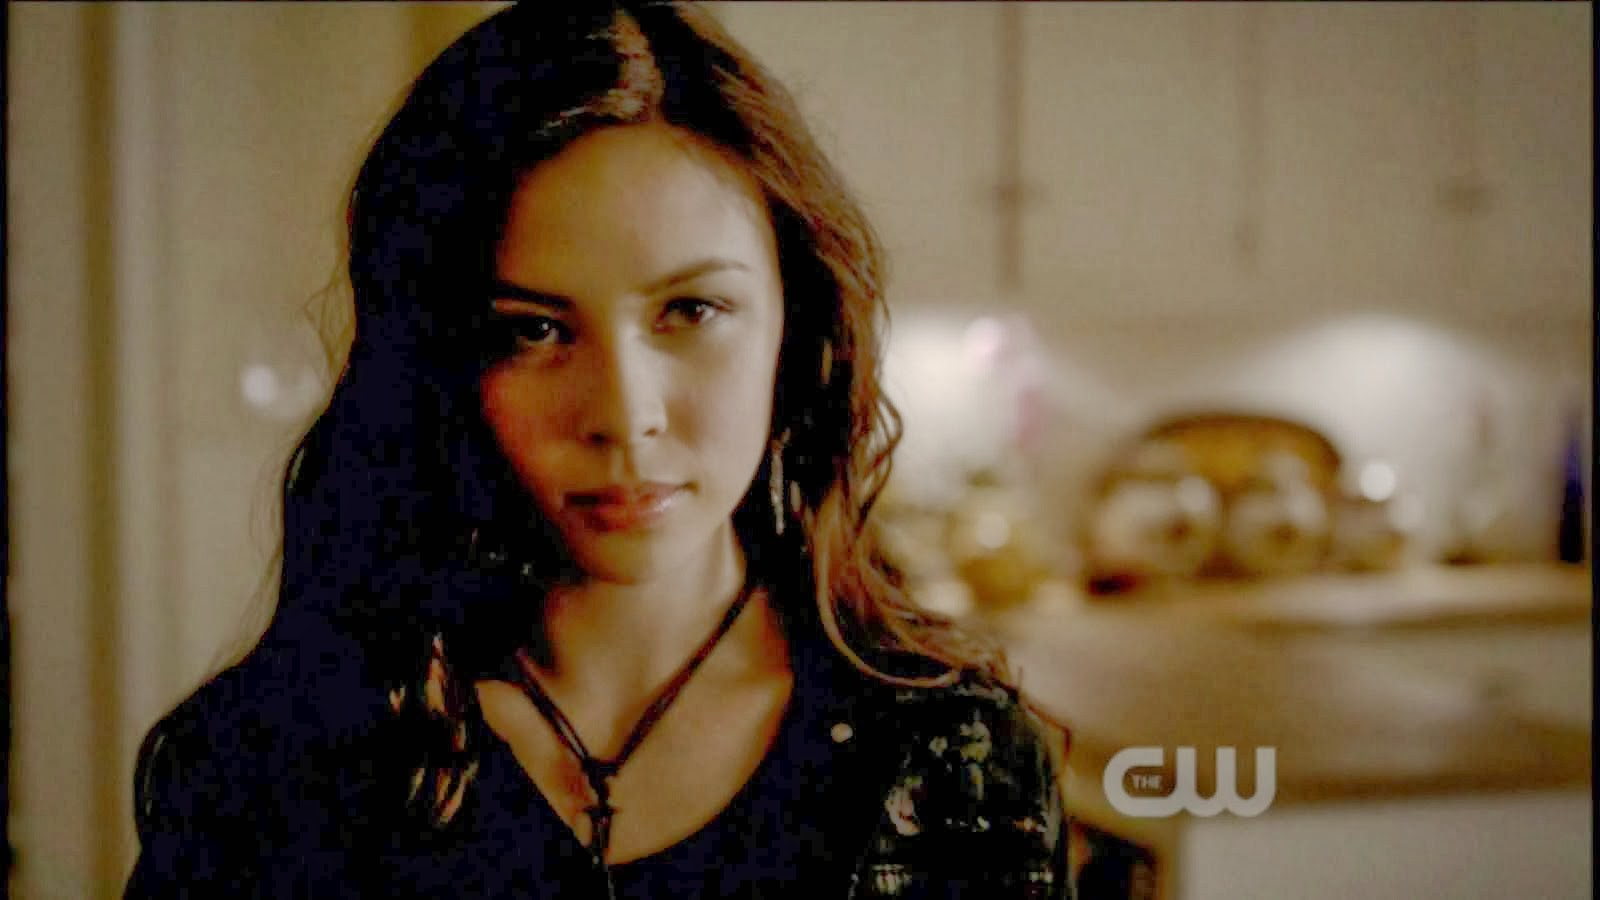 Malese Jow Aliens In The Attic